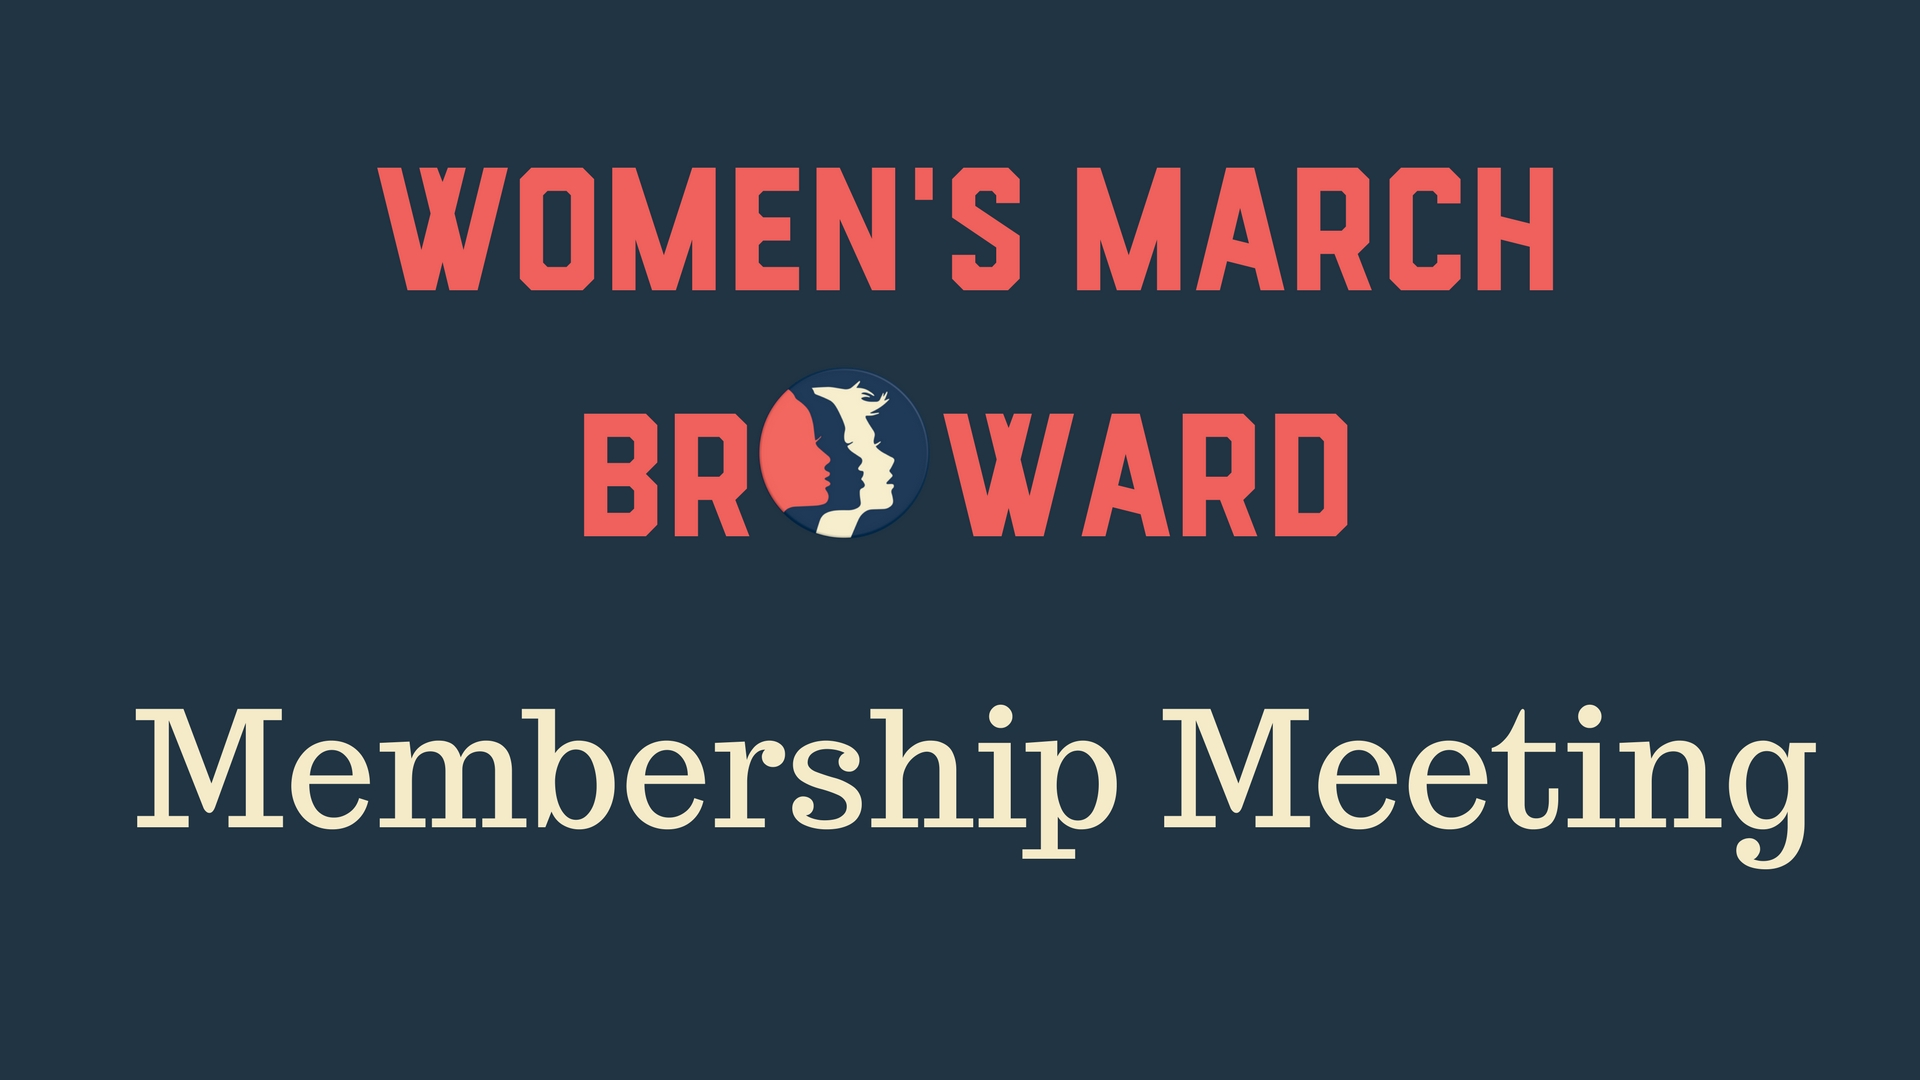 7-12-18: Membership Meeting - Please join Women's March Broward at our Membership Meeting. Please join Women's March Broward at our Membership Meeting. We will be joined by Laurie Woodward Garcia and Peggy Mustelier from the Weekly Circle of Protection at the Miramar ICE Center. They will share with us information on ICE Miramar and the detainee visitation and advocacy program at Krome. We will also hear from Christine Ho. Ms. Ho works with the Friends of Broward Detainees Program. We will also be updating everyone on our current Power to the Polls work in Broward County. Come out and learn how you can join us in registering voters, researching local, state, and national candidates, and all the 2018 legislative ballot items. Please RSVP as soon as you can so we can ask the venue to have the appropriate amount of staff working the event. :)We look forward to seeing you on July 12th!